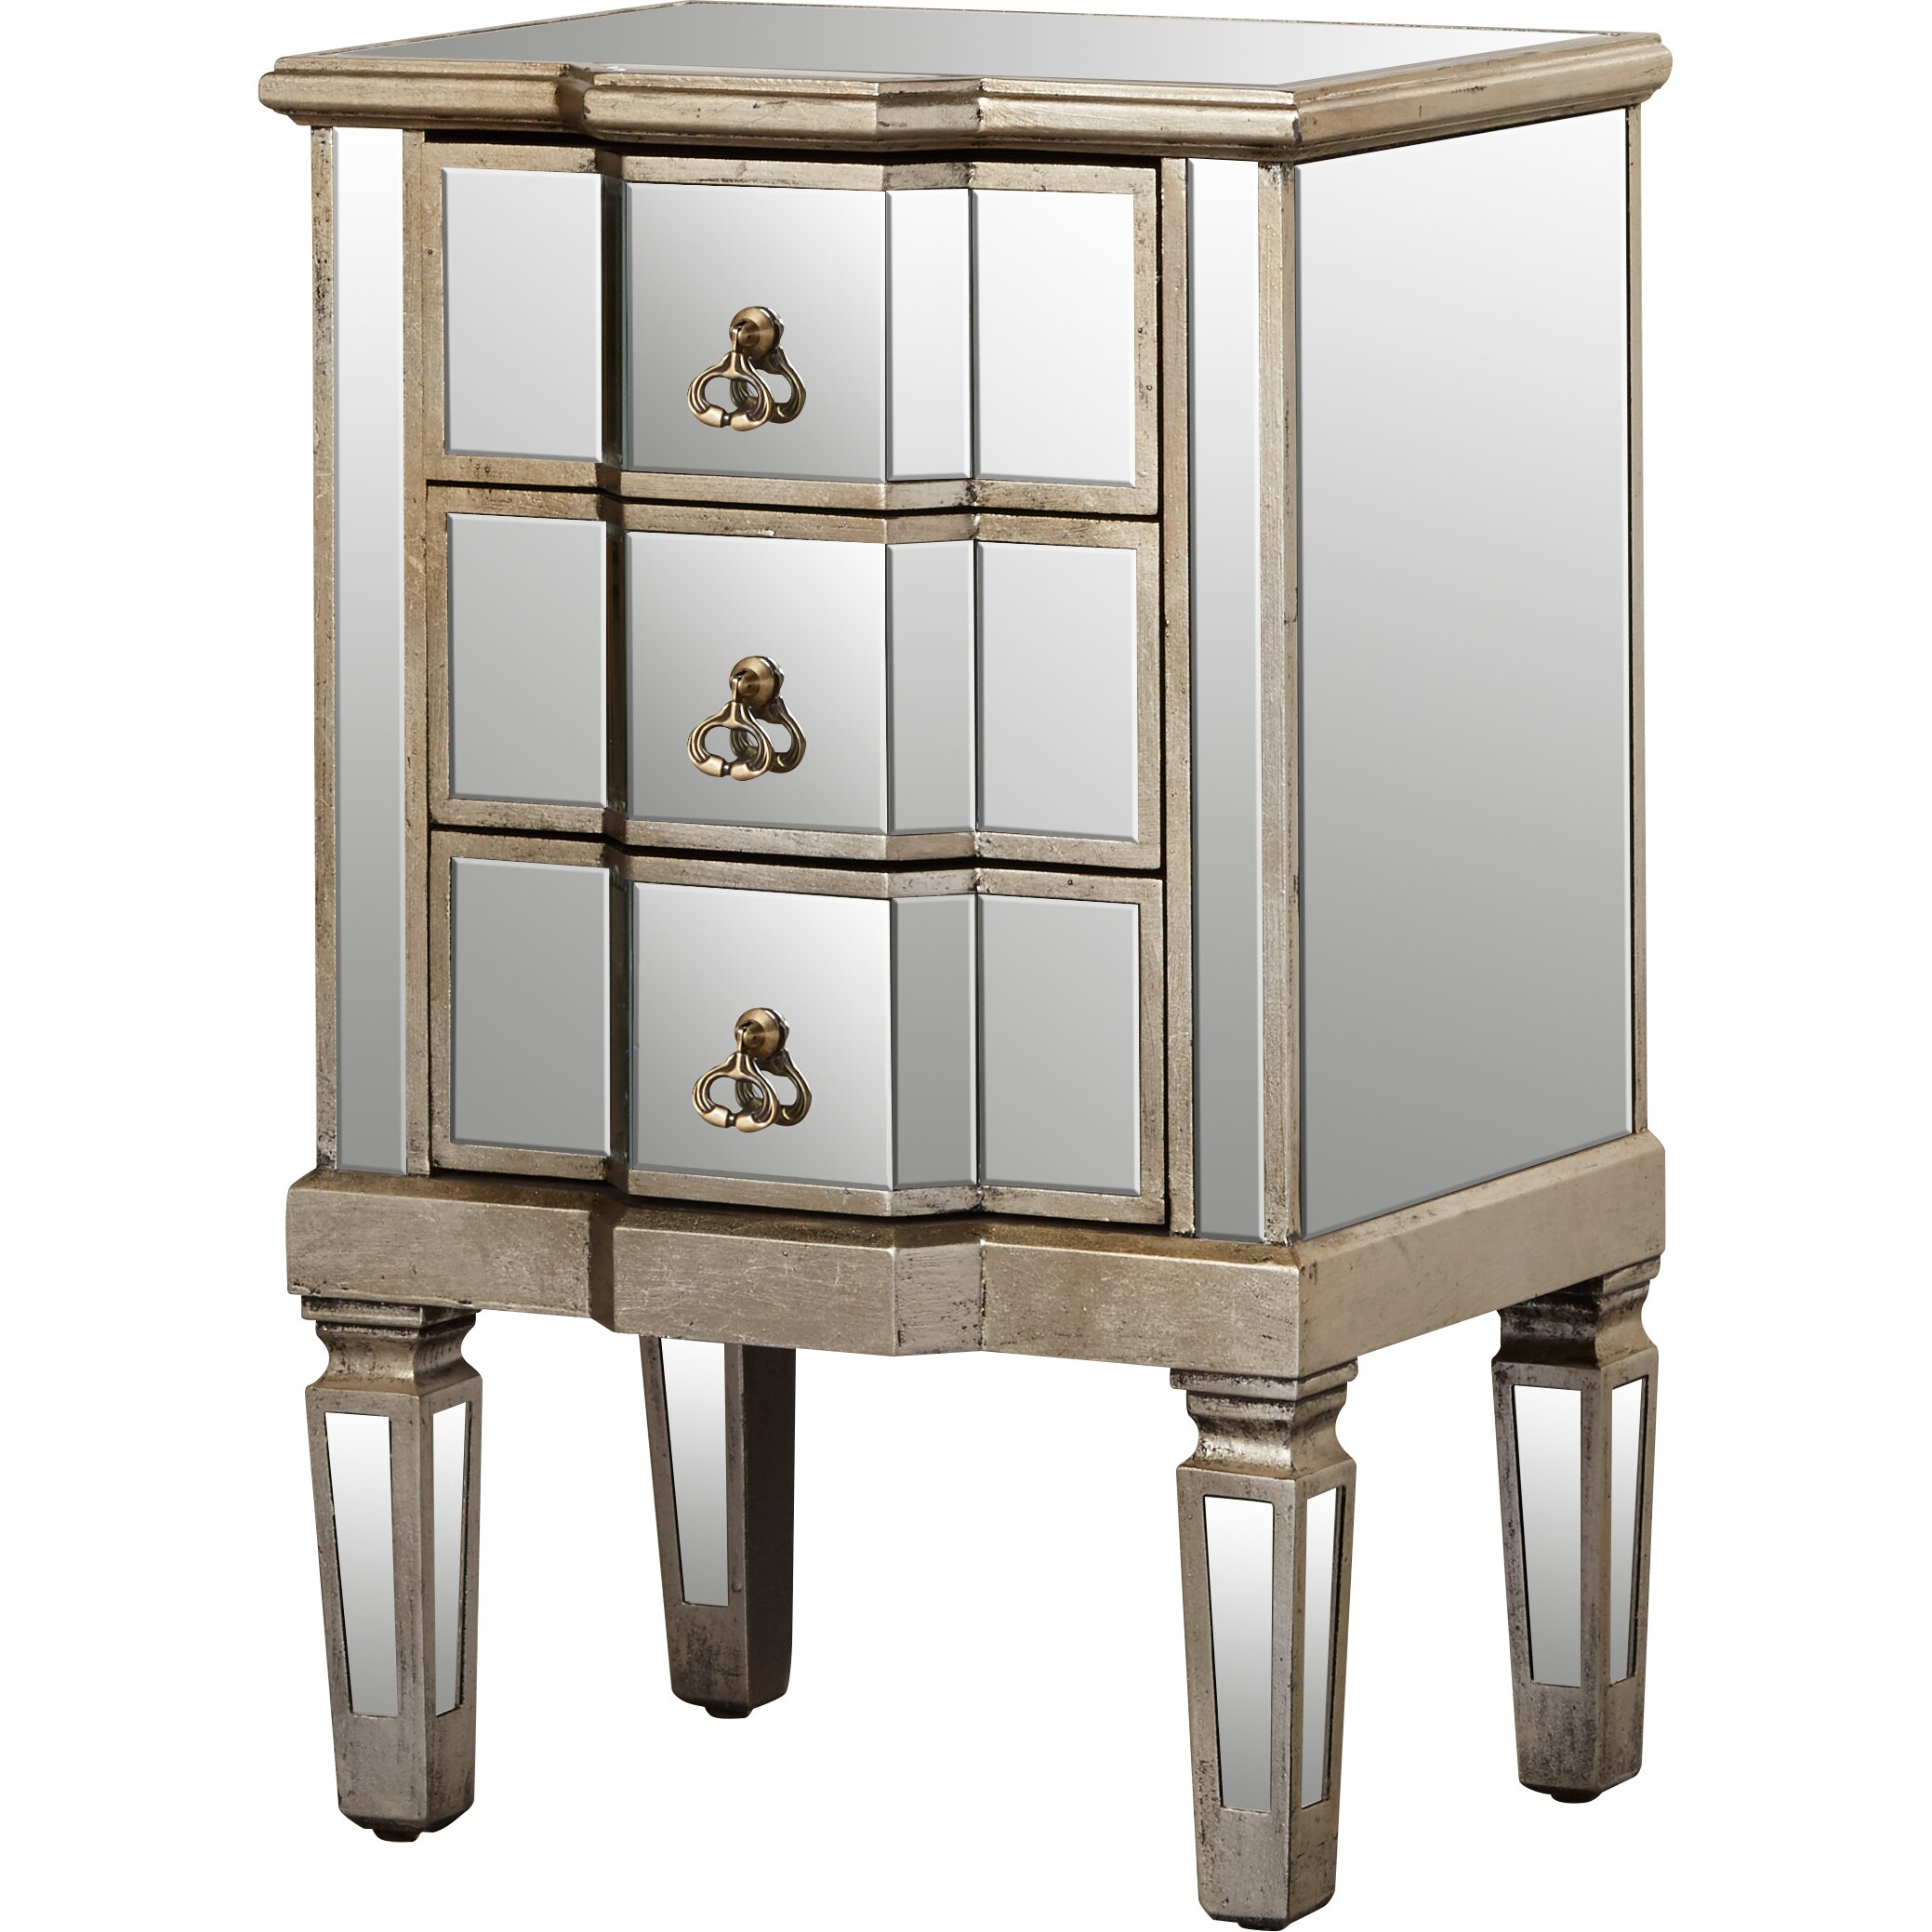 fairmont park cleethorpes 3 drawer bedside table reviews. Black Bedroom Furniture Sets. Home Design Ideas